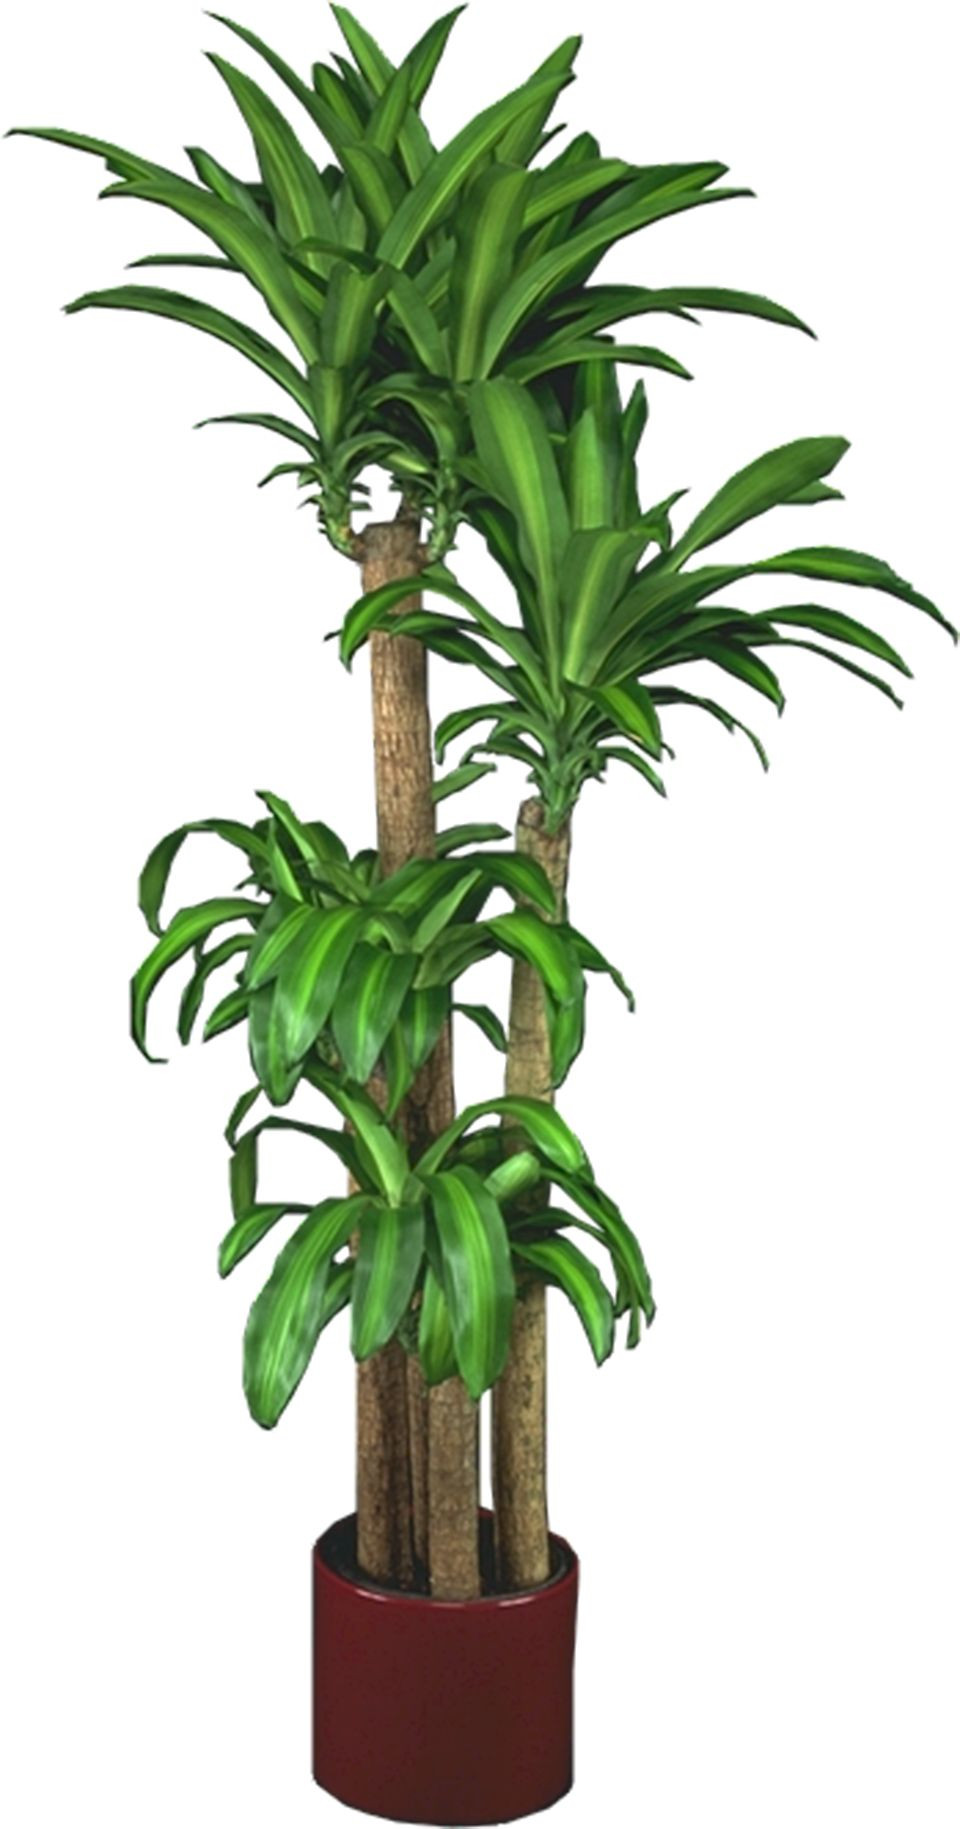 Best ideas about Indoor Plant Light . Save or Pin Low Light Plants Indoor Plants & House Plants Now.